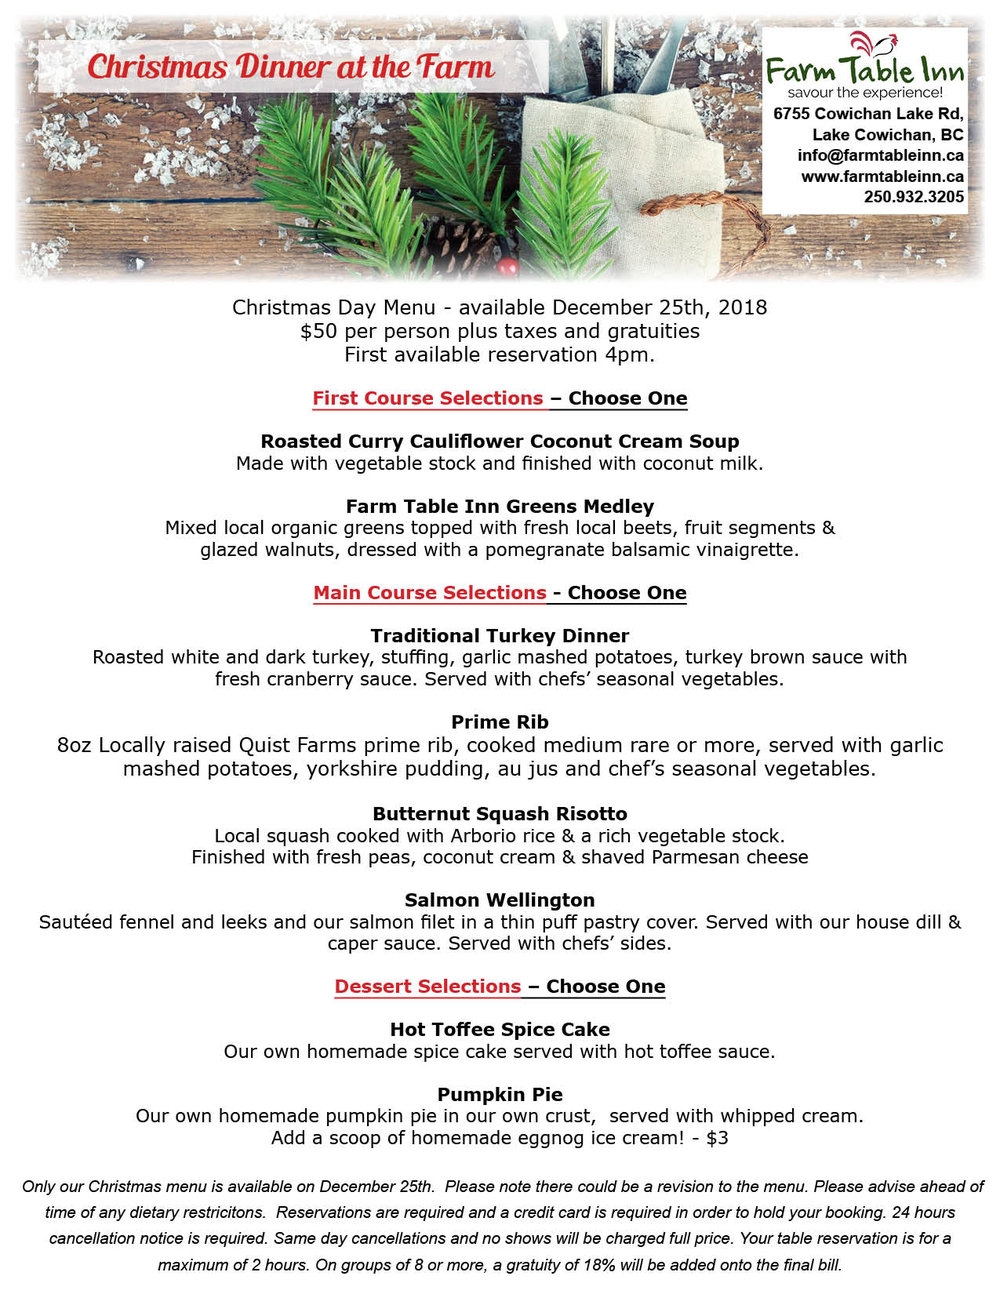 Farm Table Inn Christmas Day Plated Menu 2018.jpg